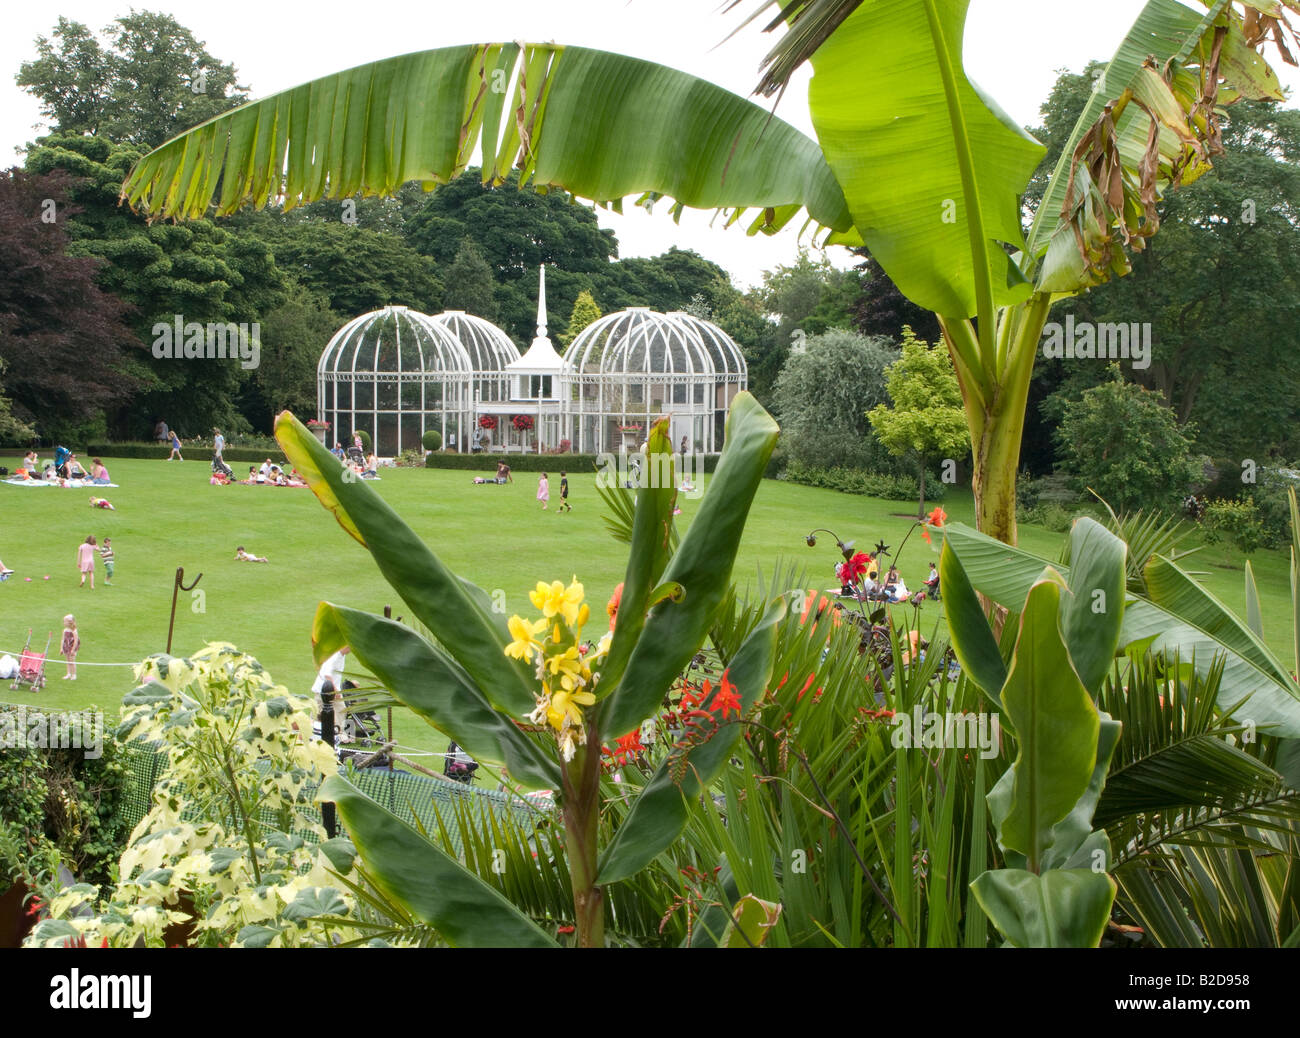 A View Of The Famous Lawn Aviary At Birmingham Botanical Gardens Stock Photo Royalty Free Image